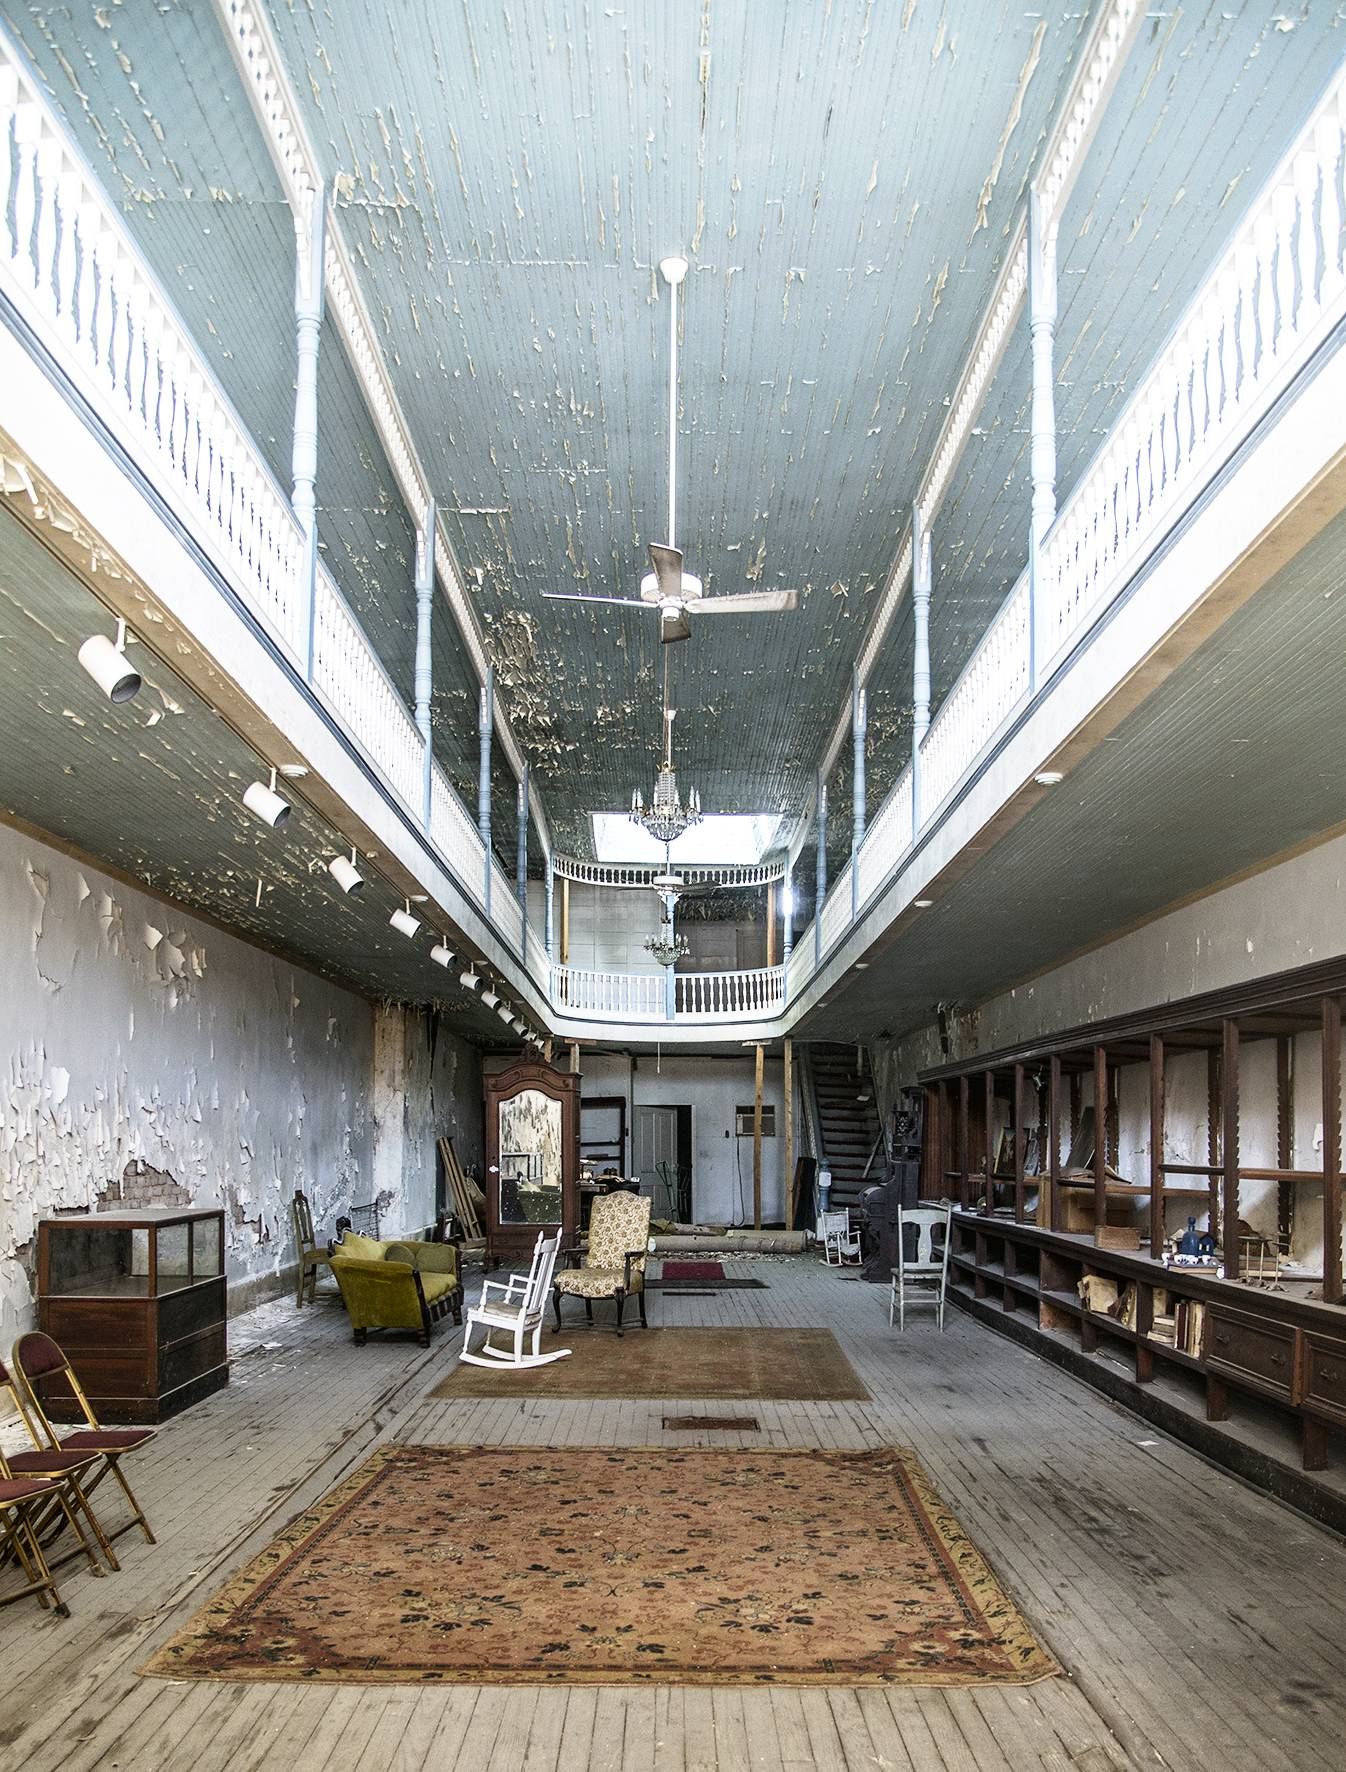 5 Far Fading West, Two Stories Shop, 2015